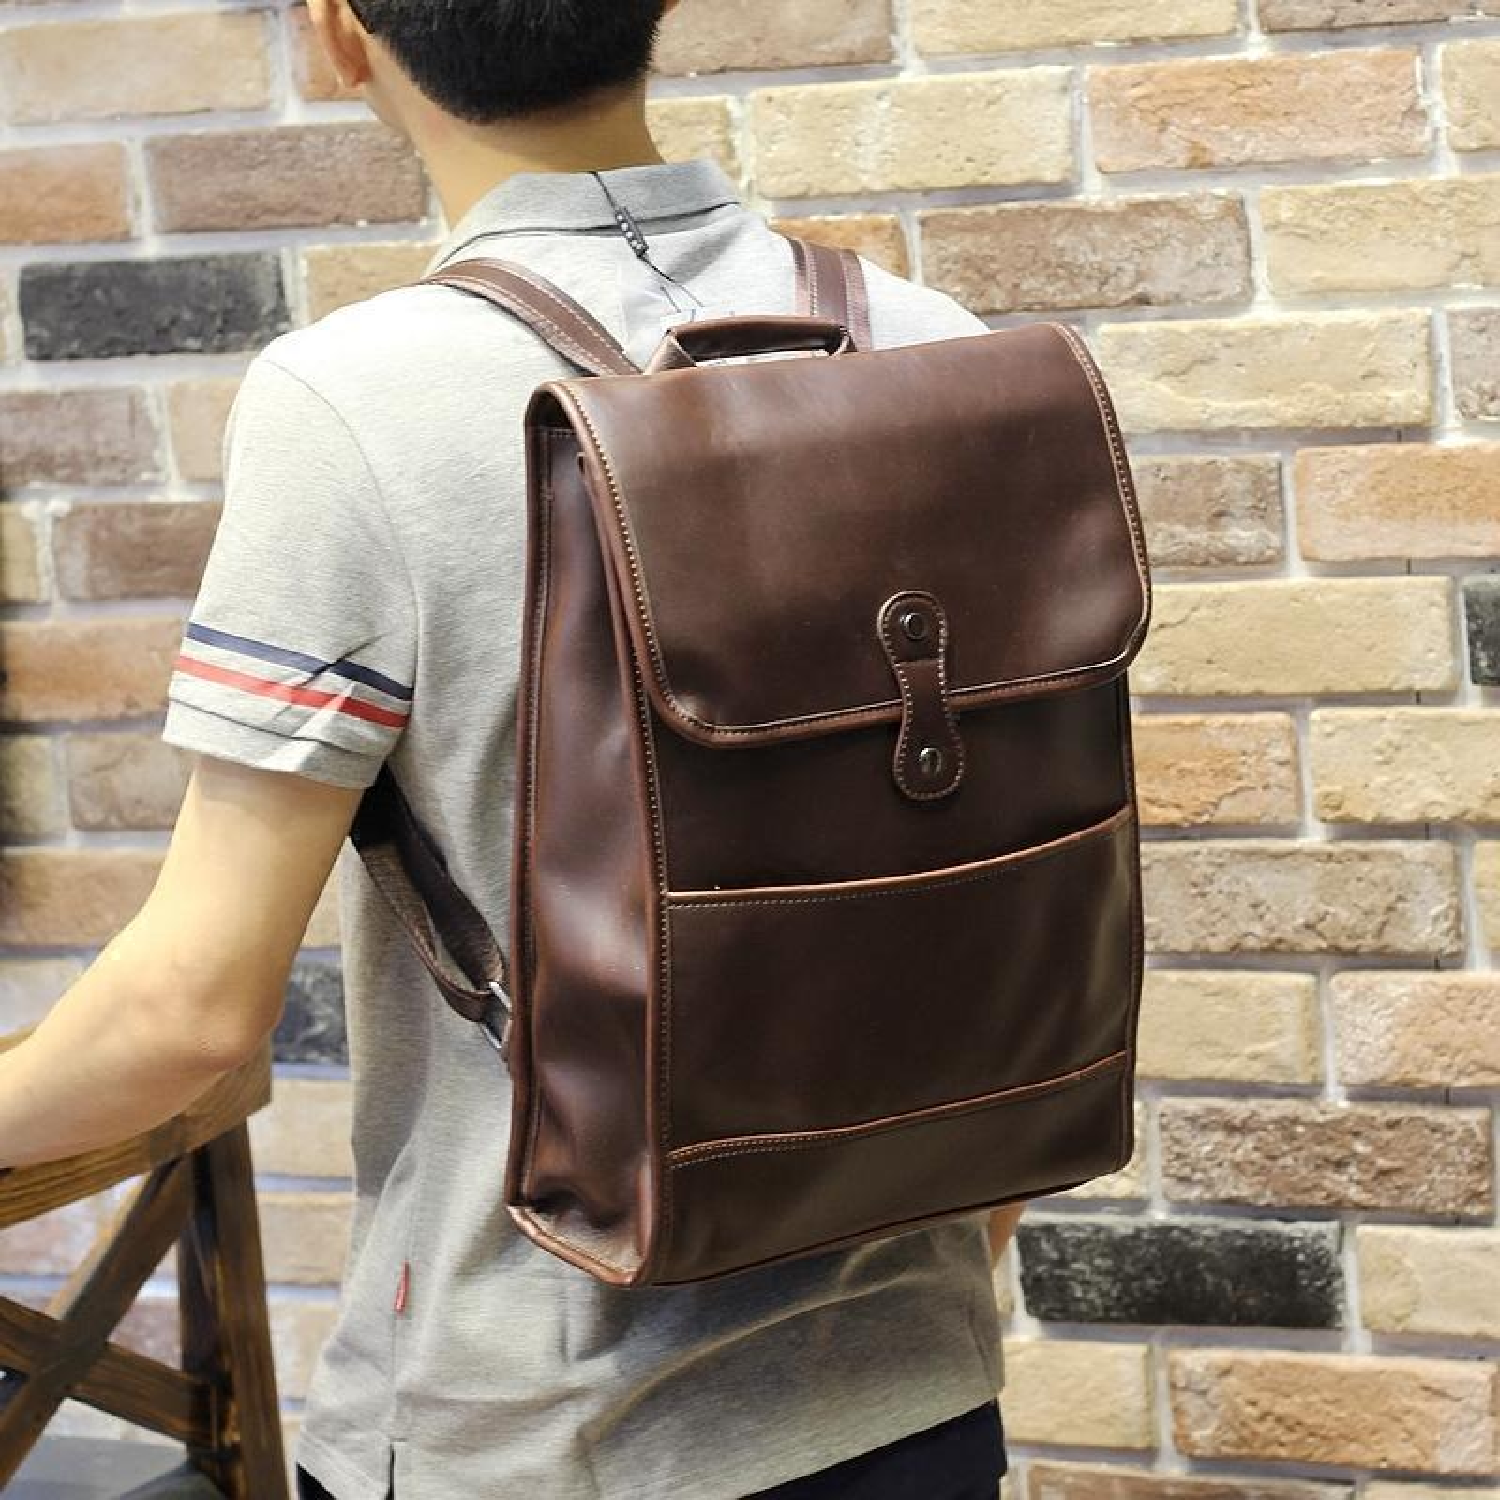 New fashion men PU leather backpack high quality men s travel bags preppy style  men school bags c514b6d69a5e1